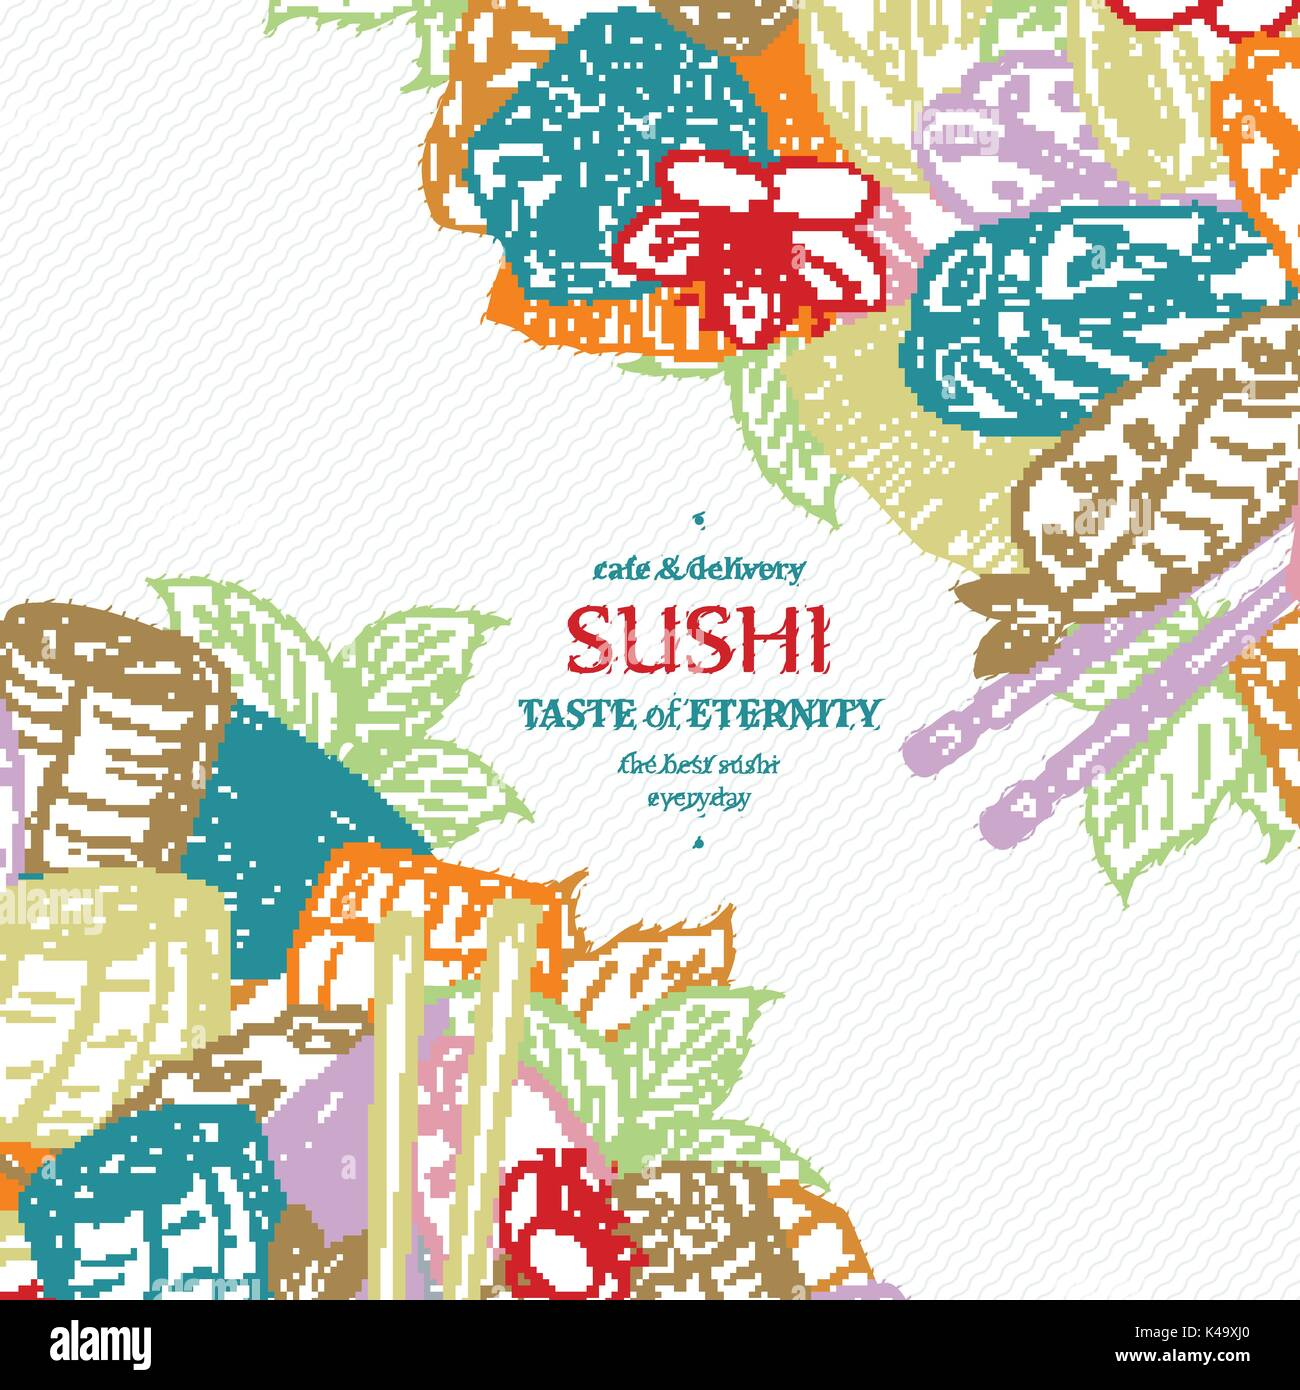 Doodle Sushi Restaurant Menu Design Template Engrave Asian Food Stock Vector Image Art Alamy